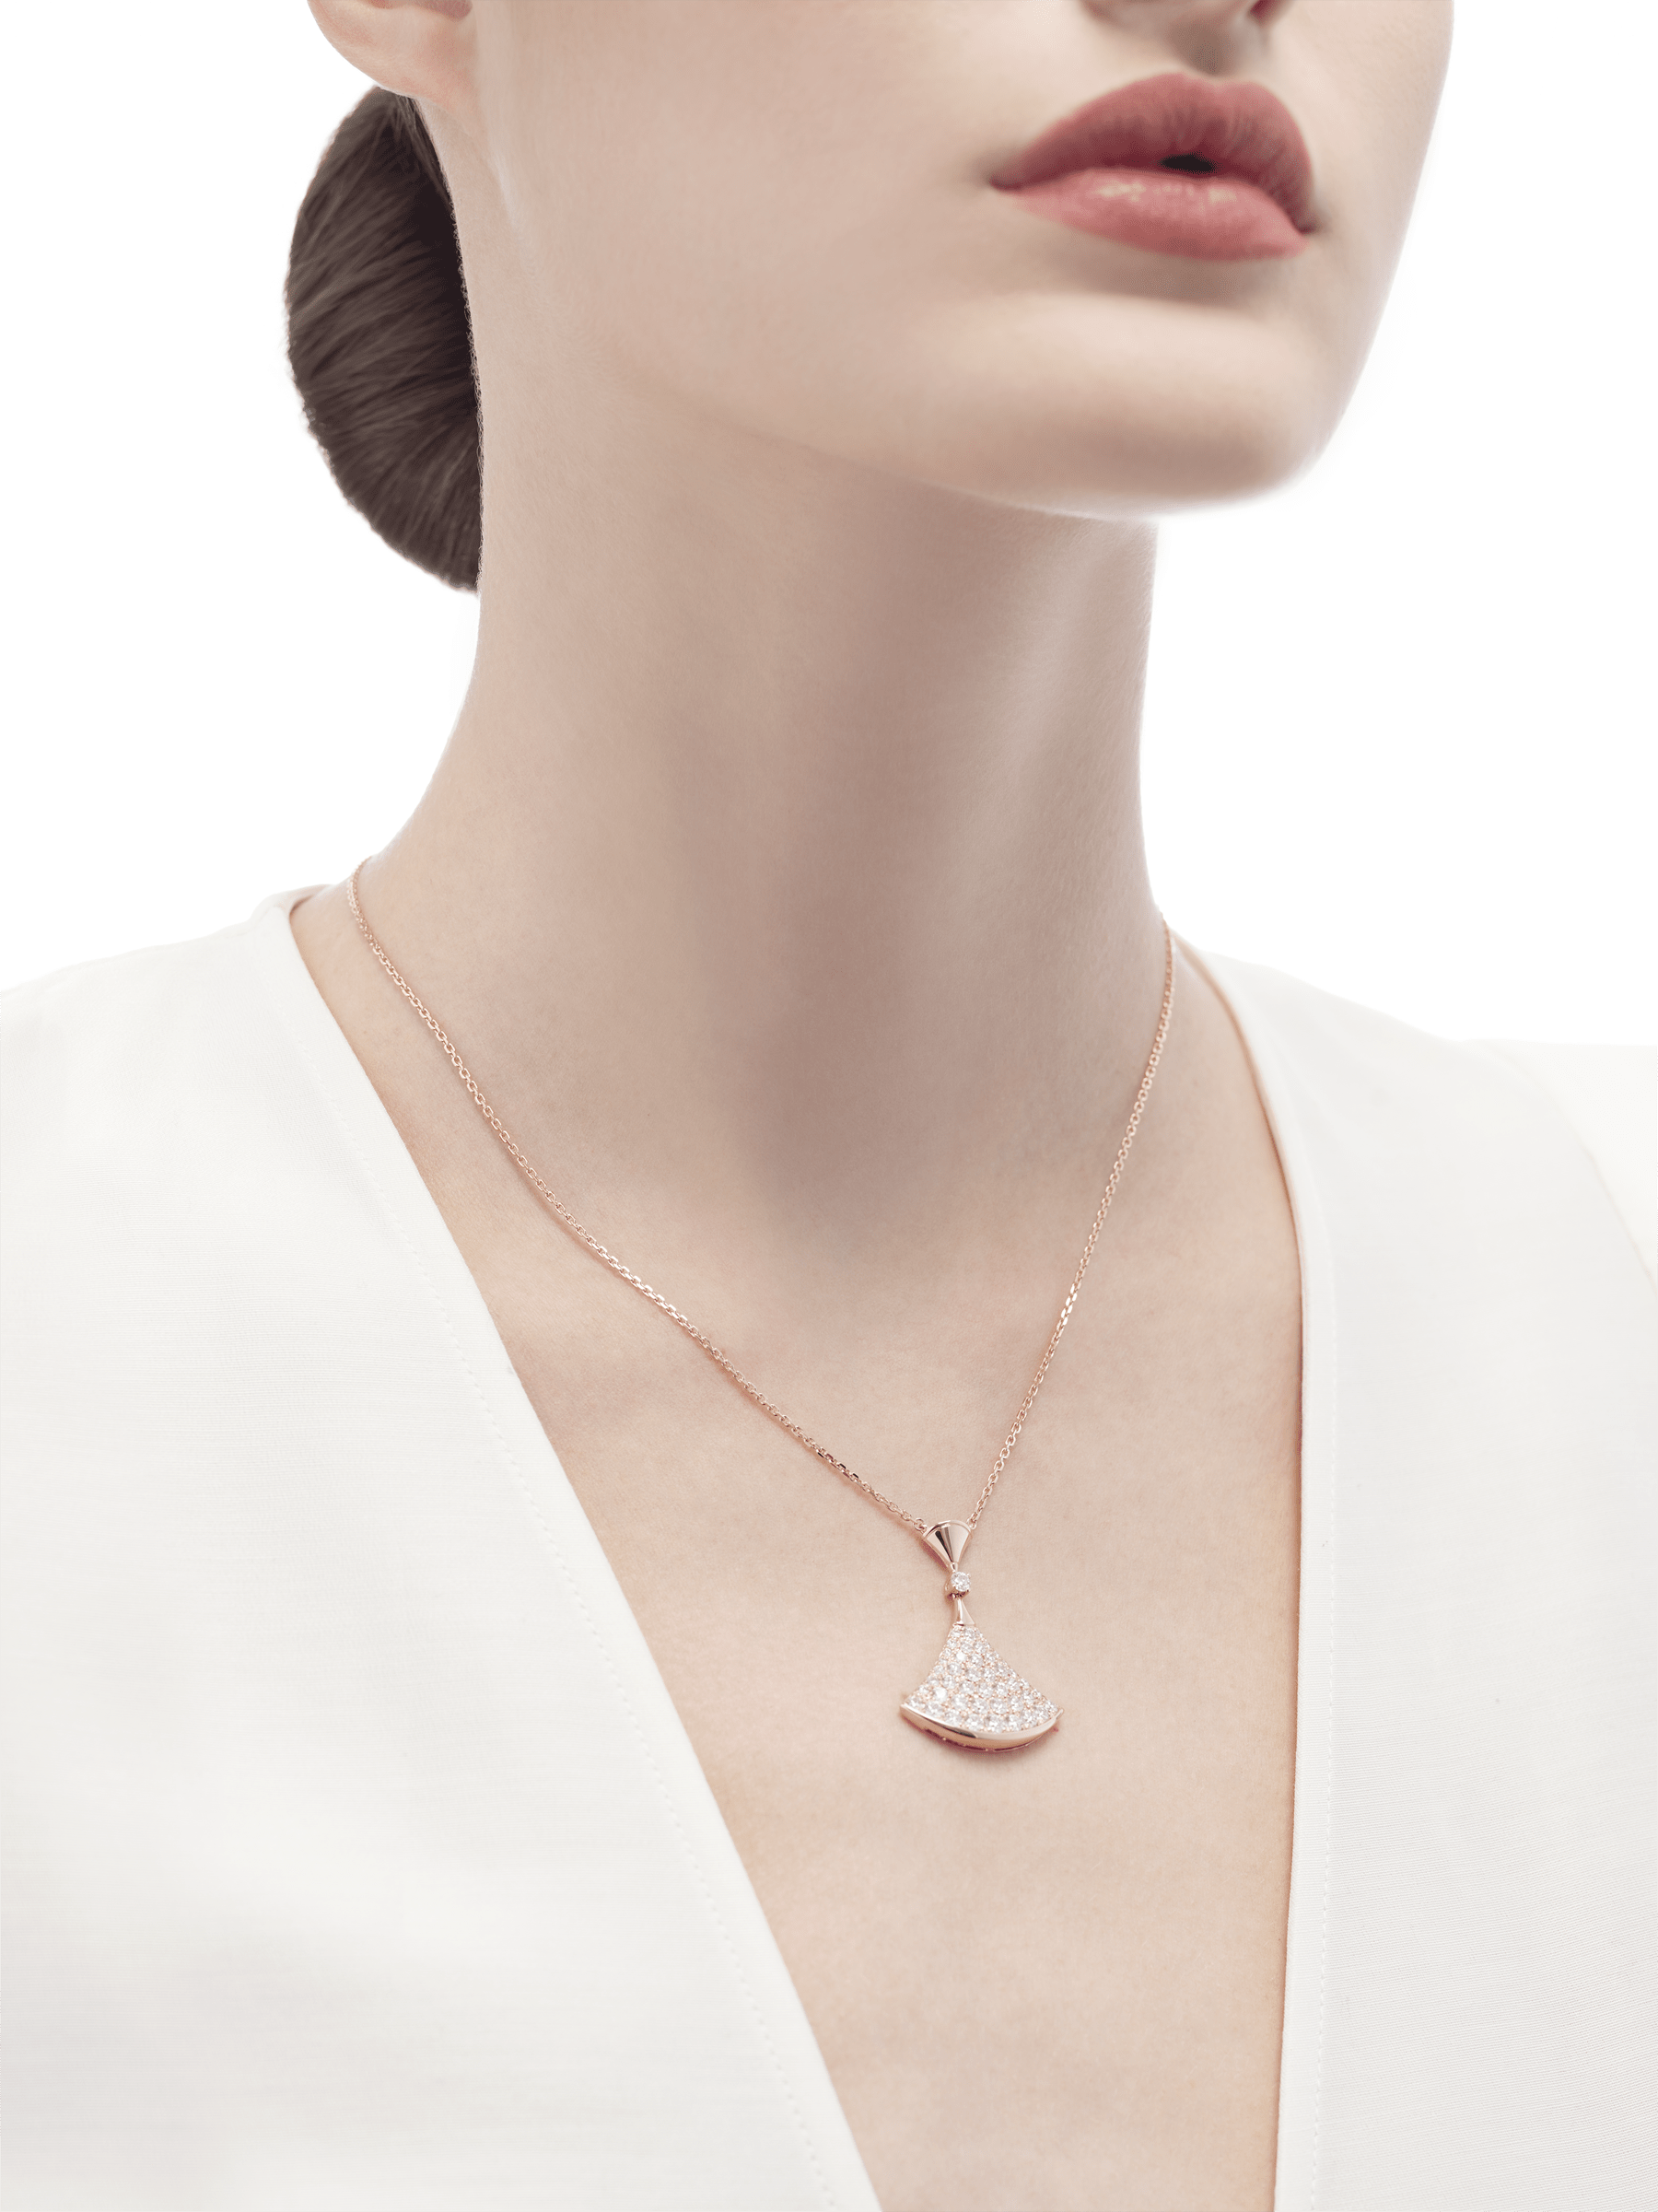 DIVAS' DREAM necklace in 18 kt rose gold with pendant set with one diamond and pavé diamonds. 350067 image 3